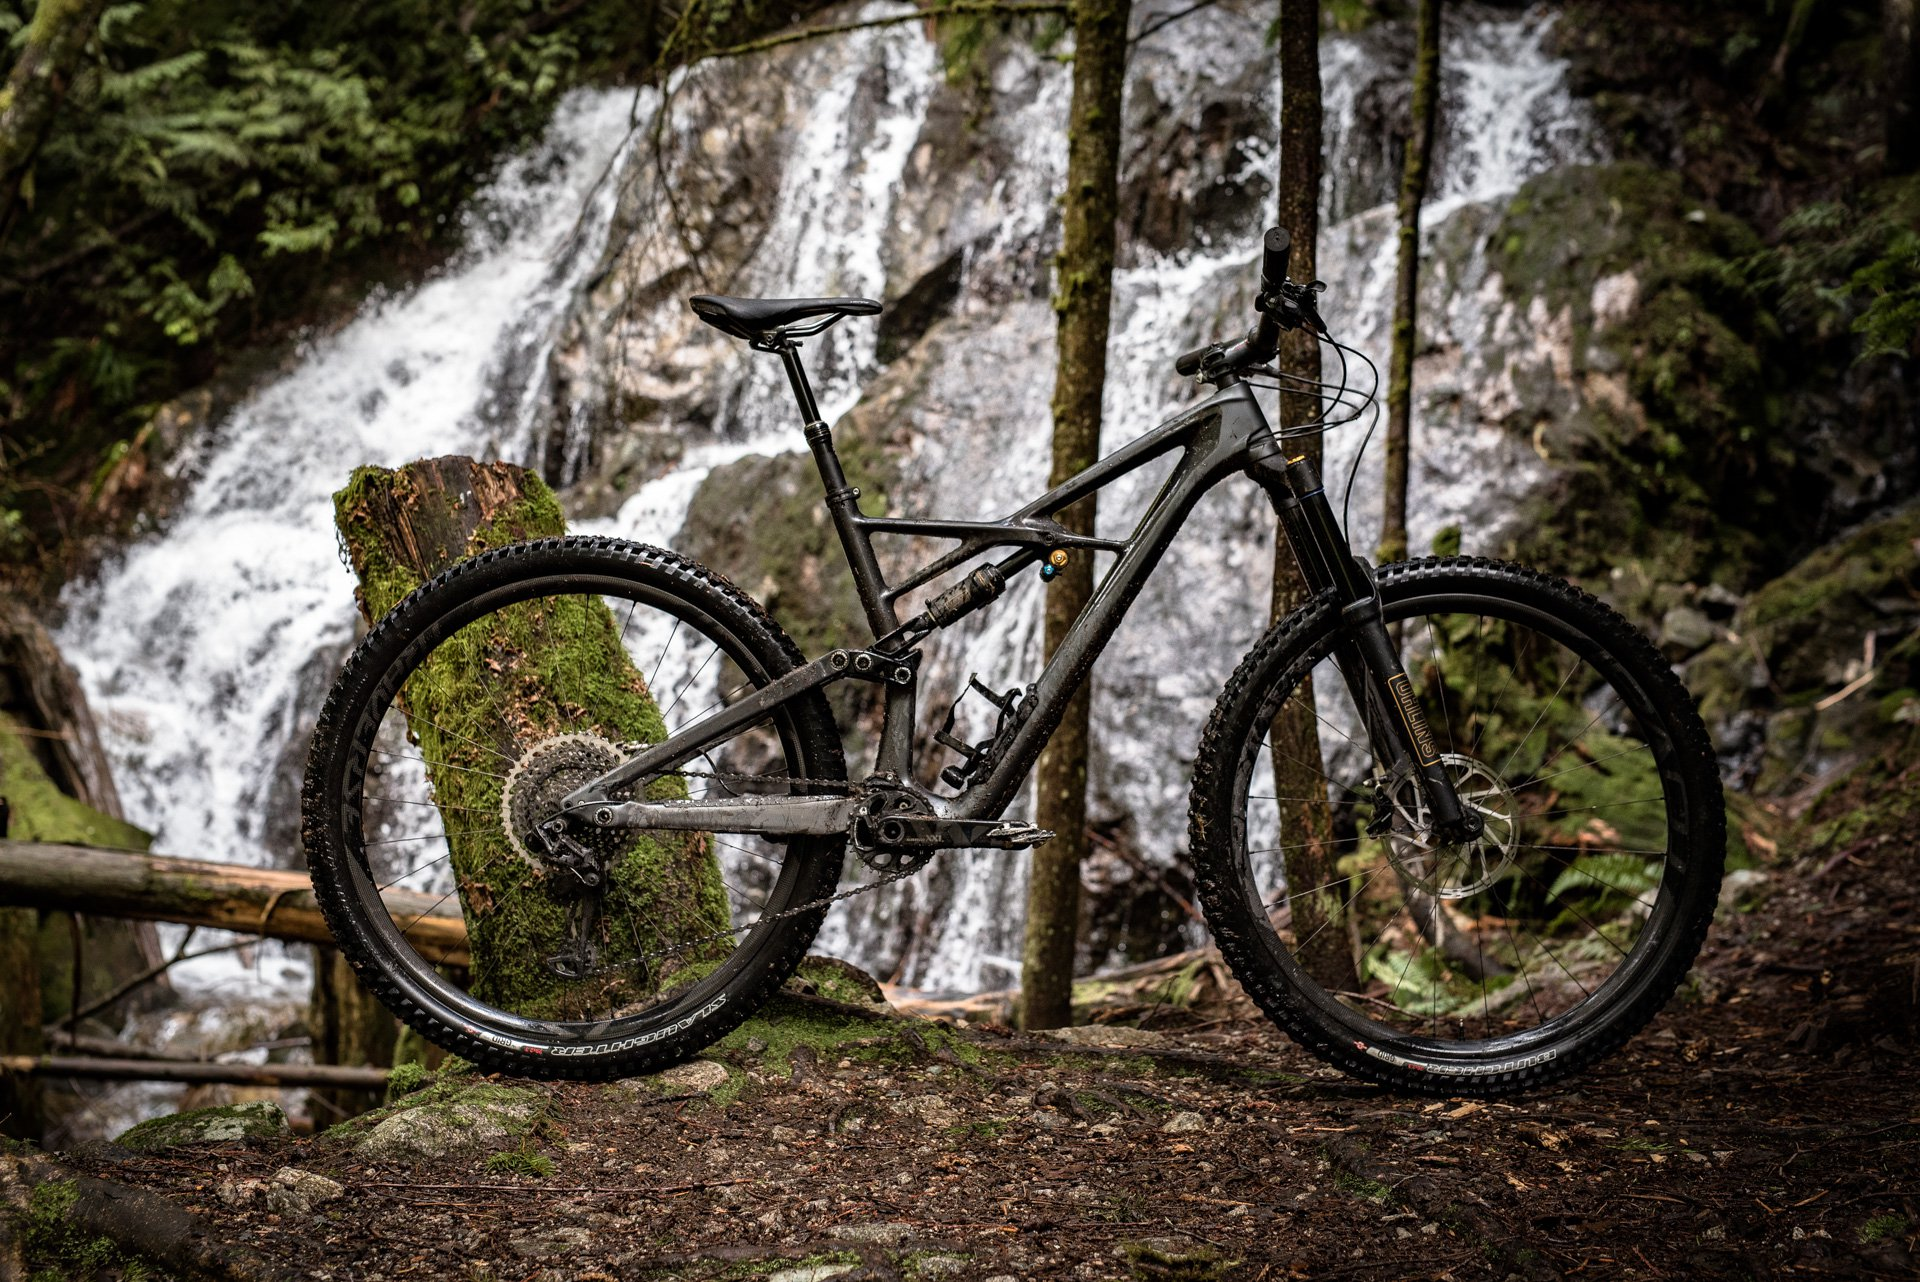 nsmb_2017_geareview_specialized_enduro29_PerrySchebel-7748.jpg